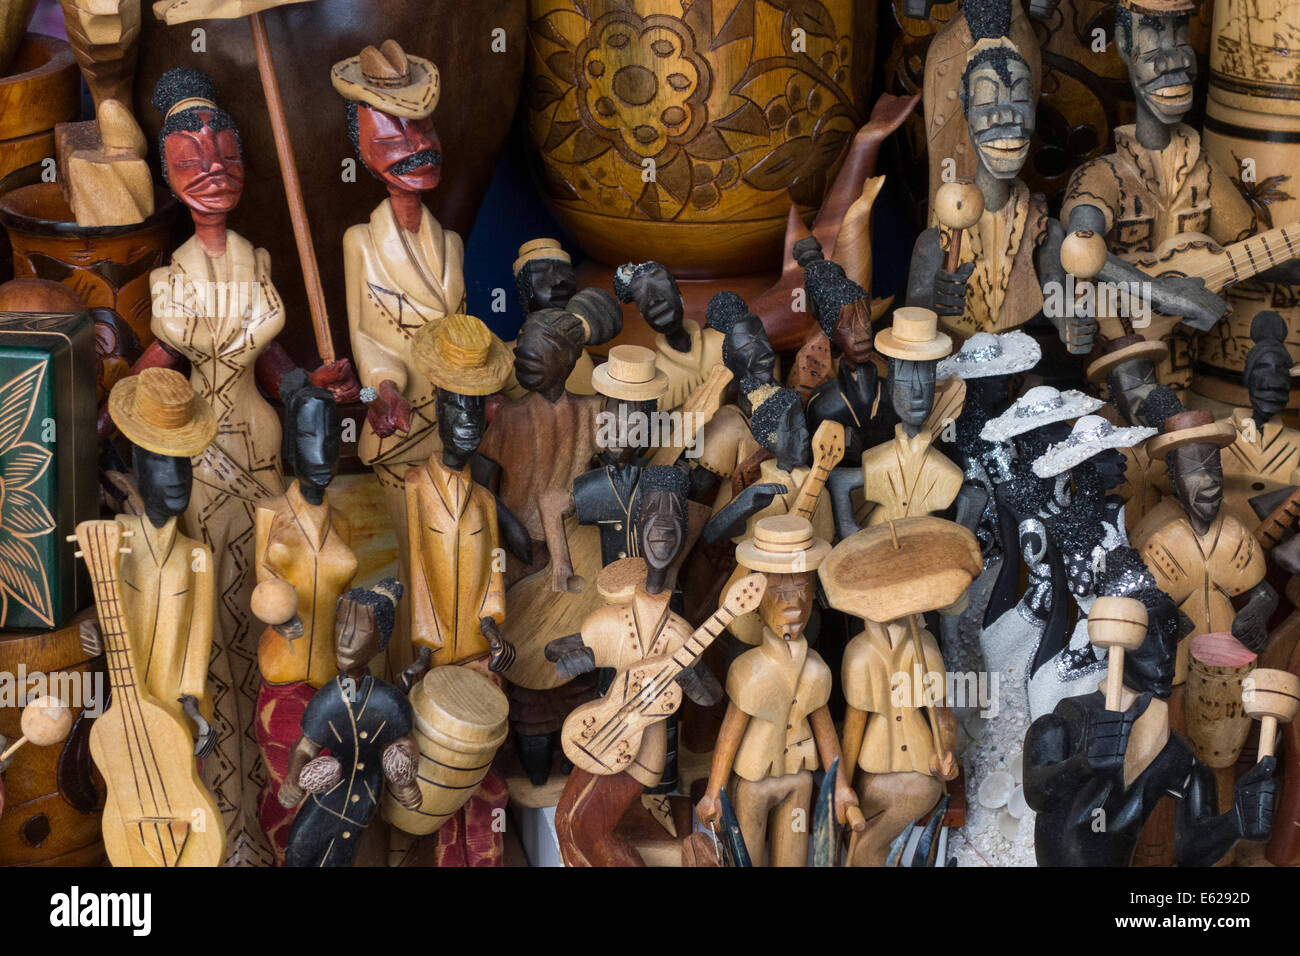 Carved wooden objects for sale souvenir shop the nassau